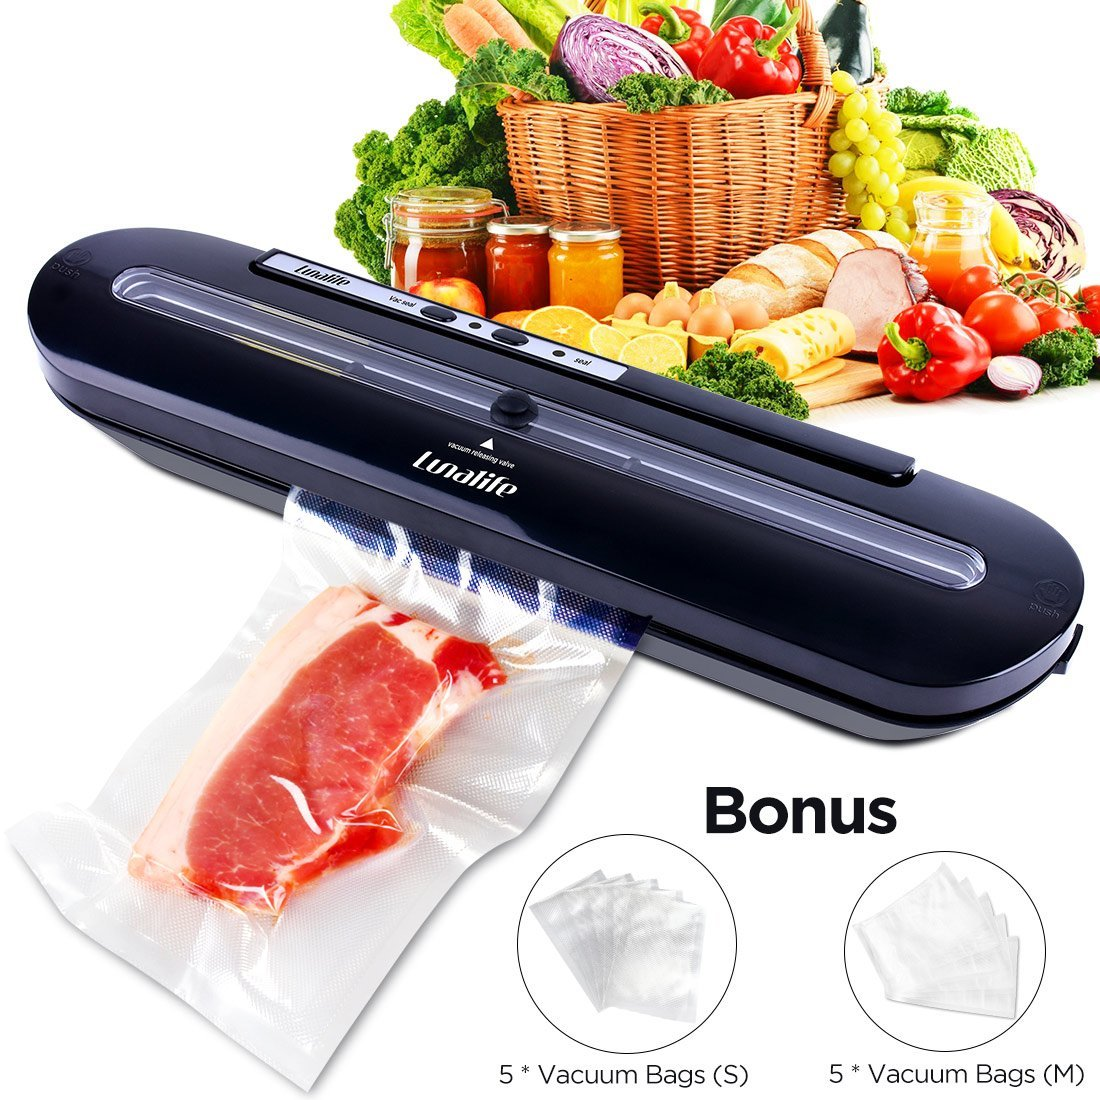 Vacuum Sealer Upgraded Automatic Vacuum Air Sealing System Preserve & Store Food Vacuo for Sous Vide Cooking Roll of Vacuum Bags (Black)